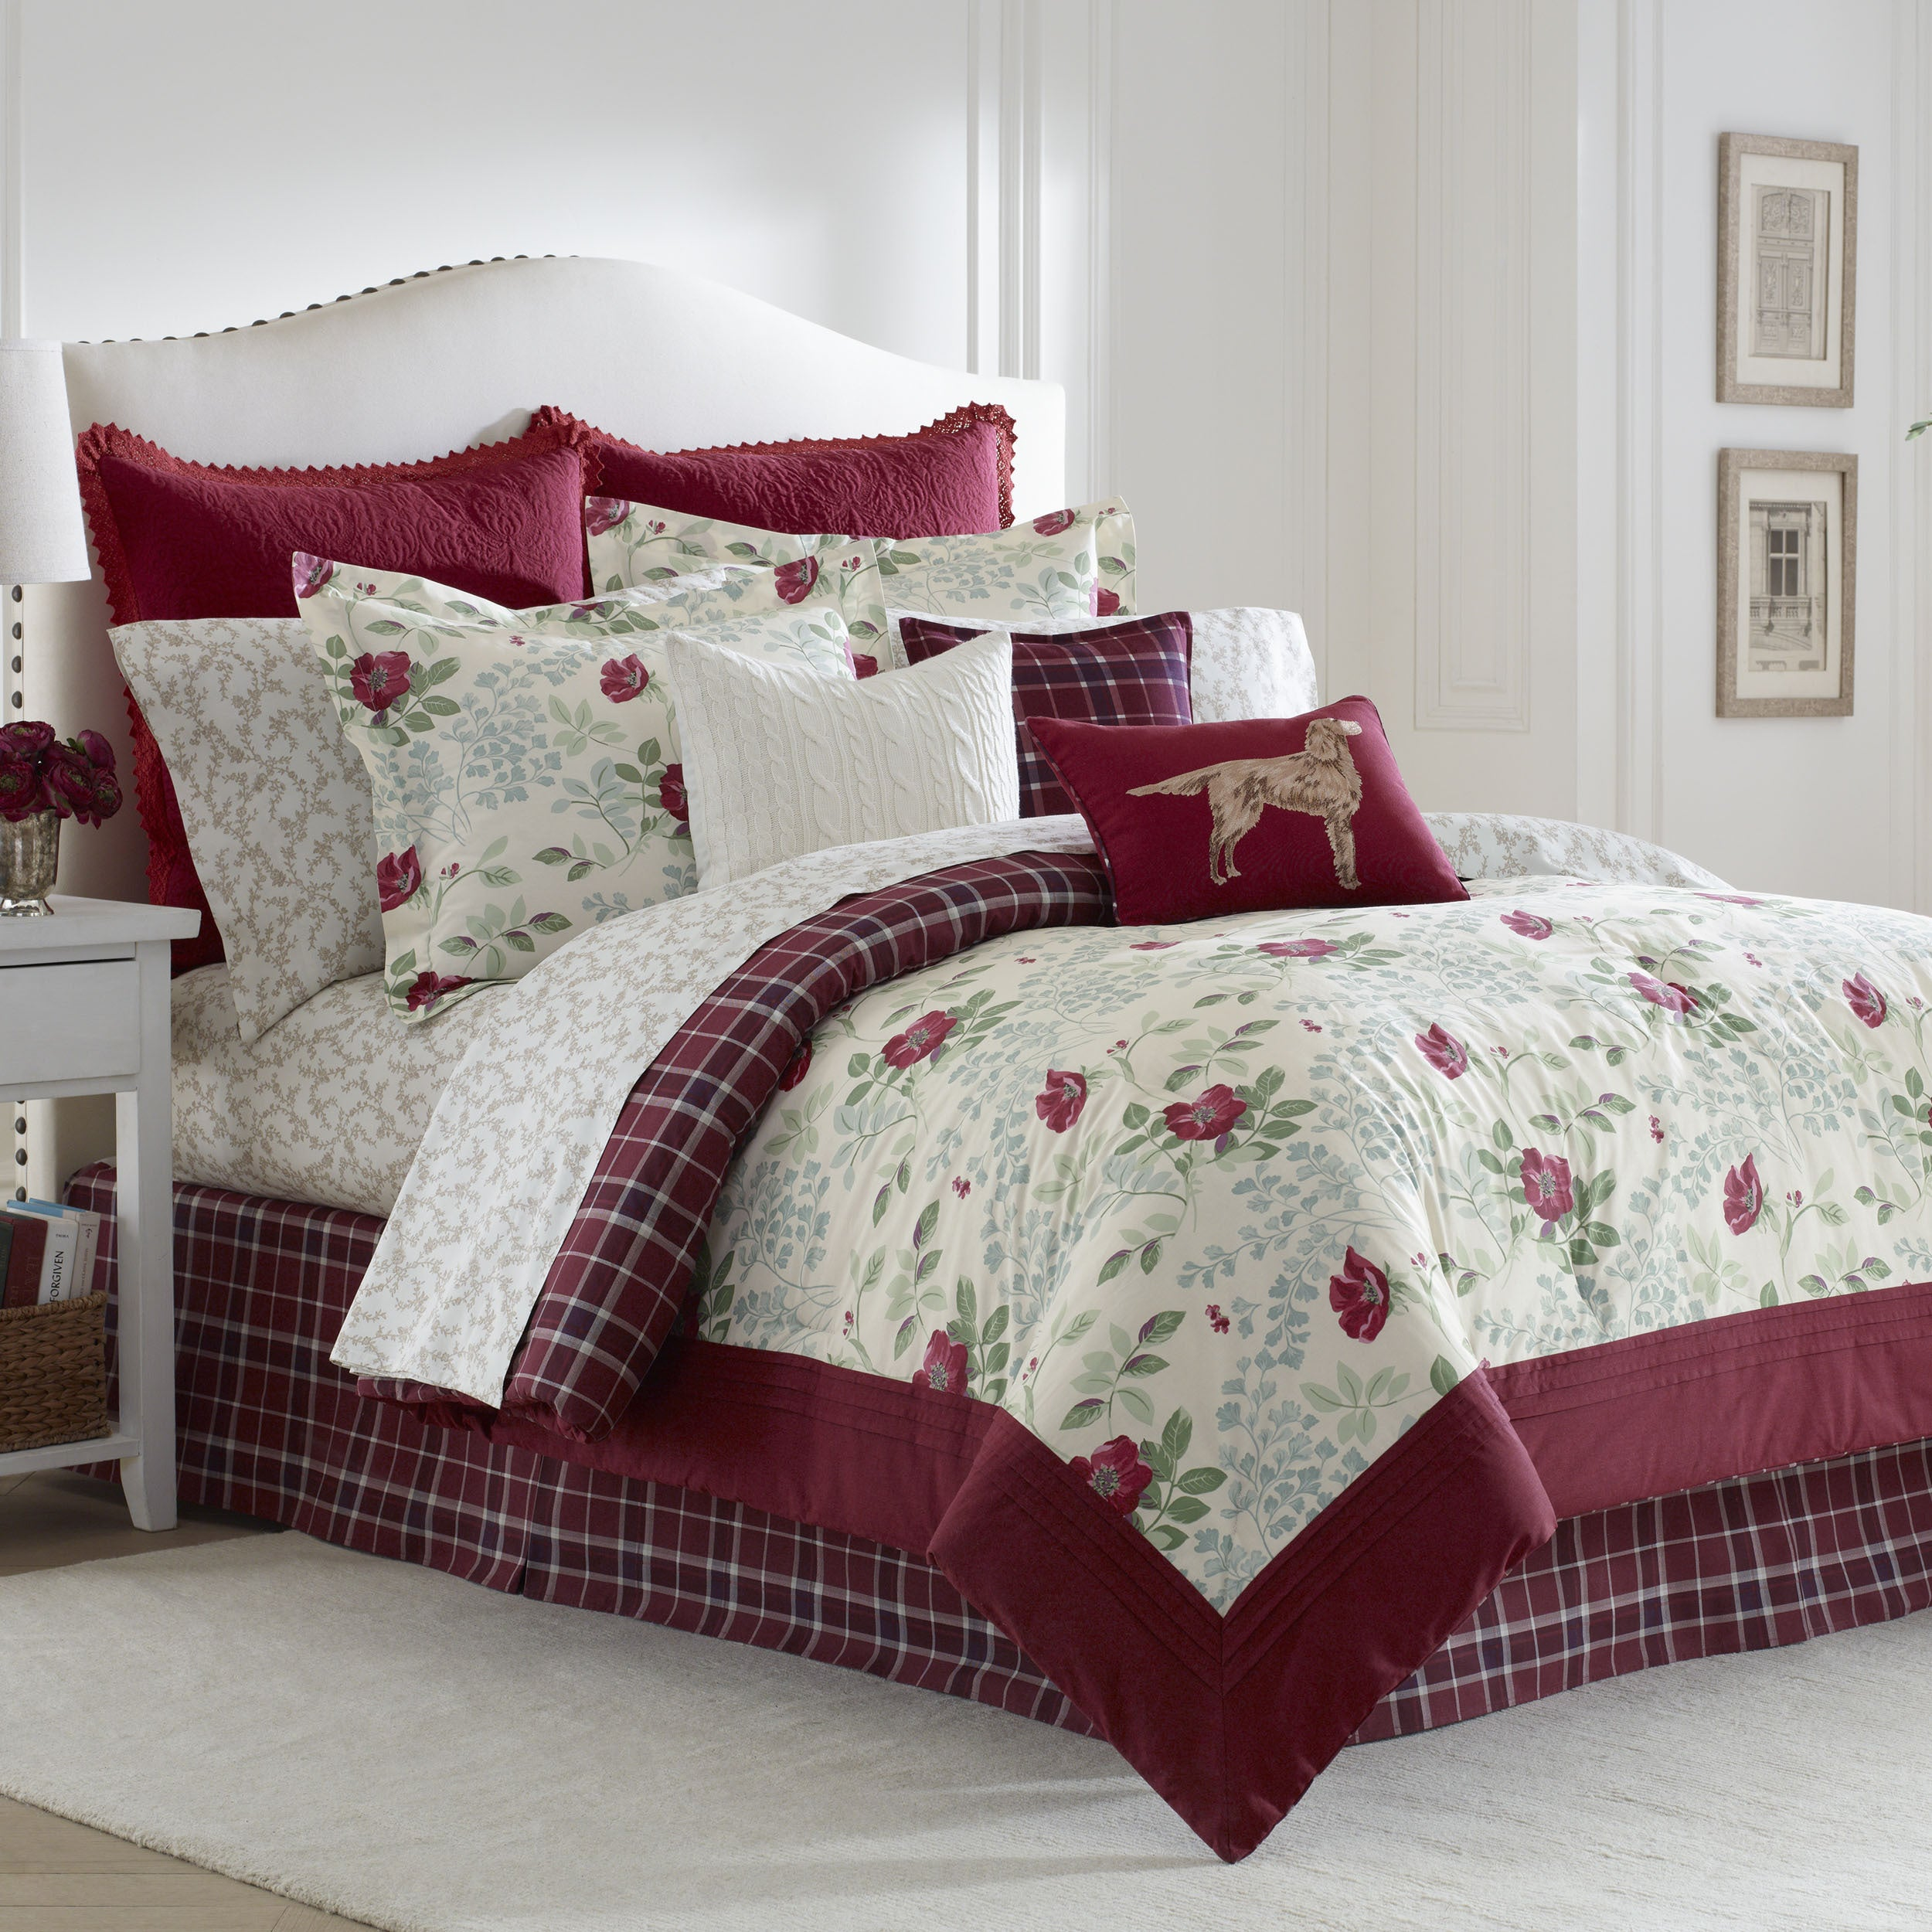 Cassandra Bedding Set